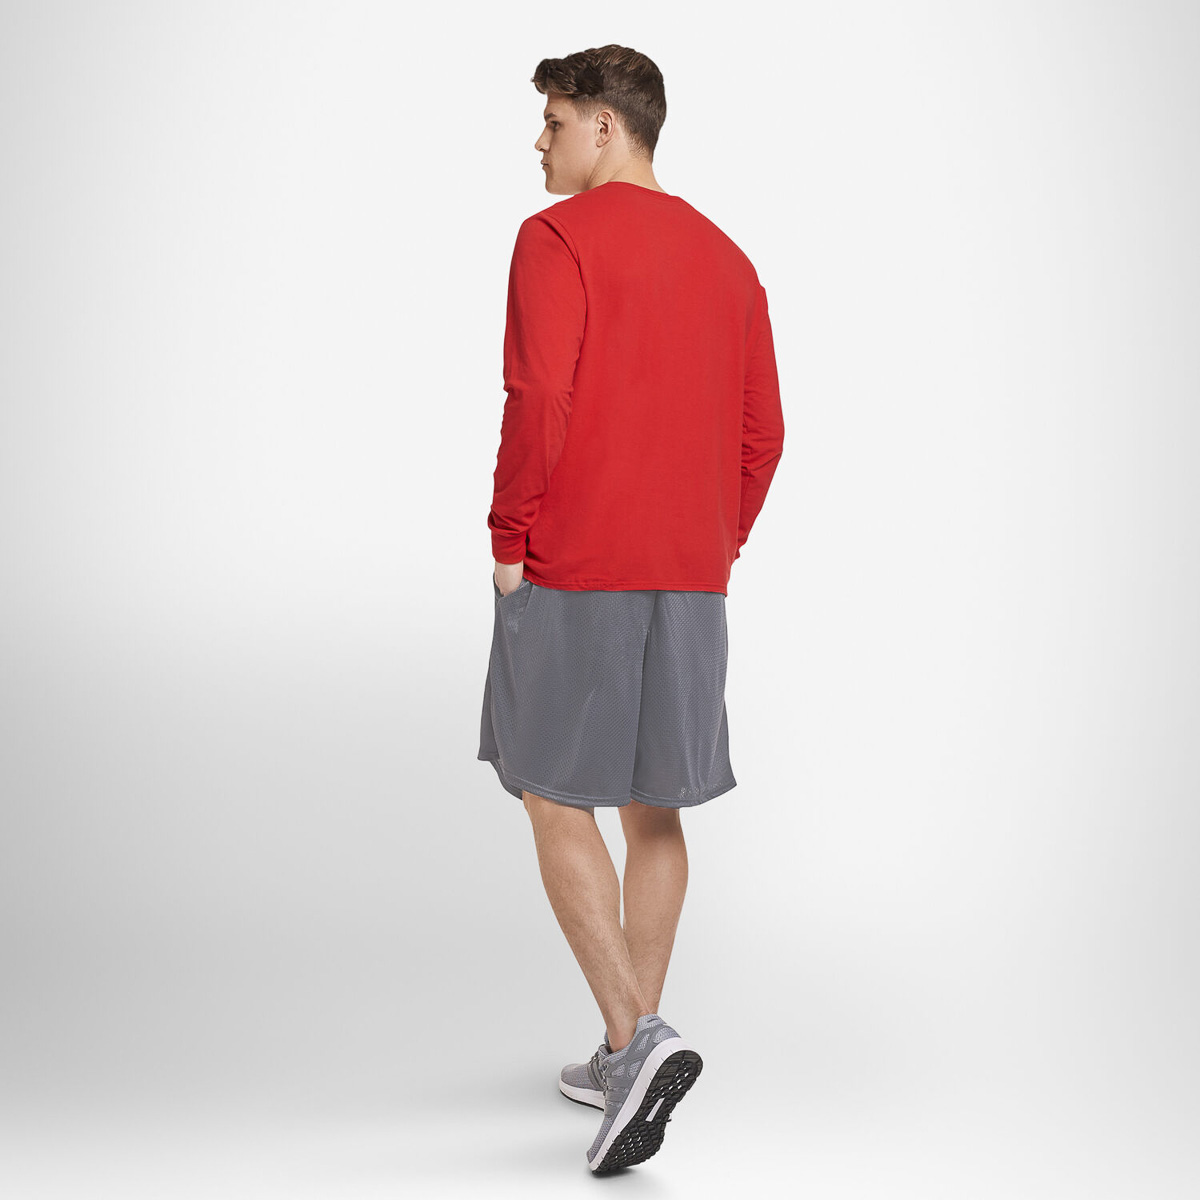 Russell-Athletic-Mens-Shorts-With-Pockets-Mesh-Moisture-Wicking-Gym-Activewear thumbnail 27